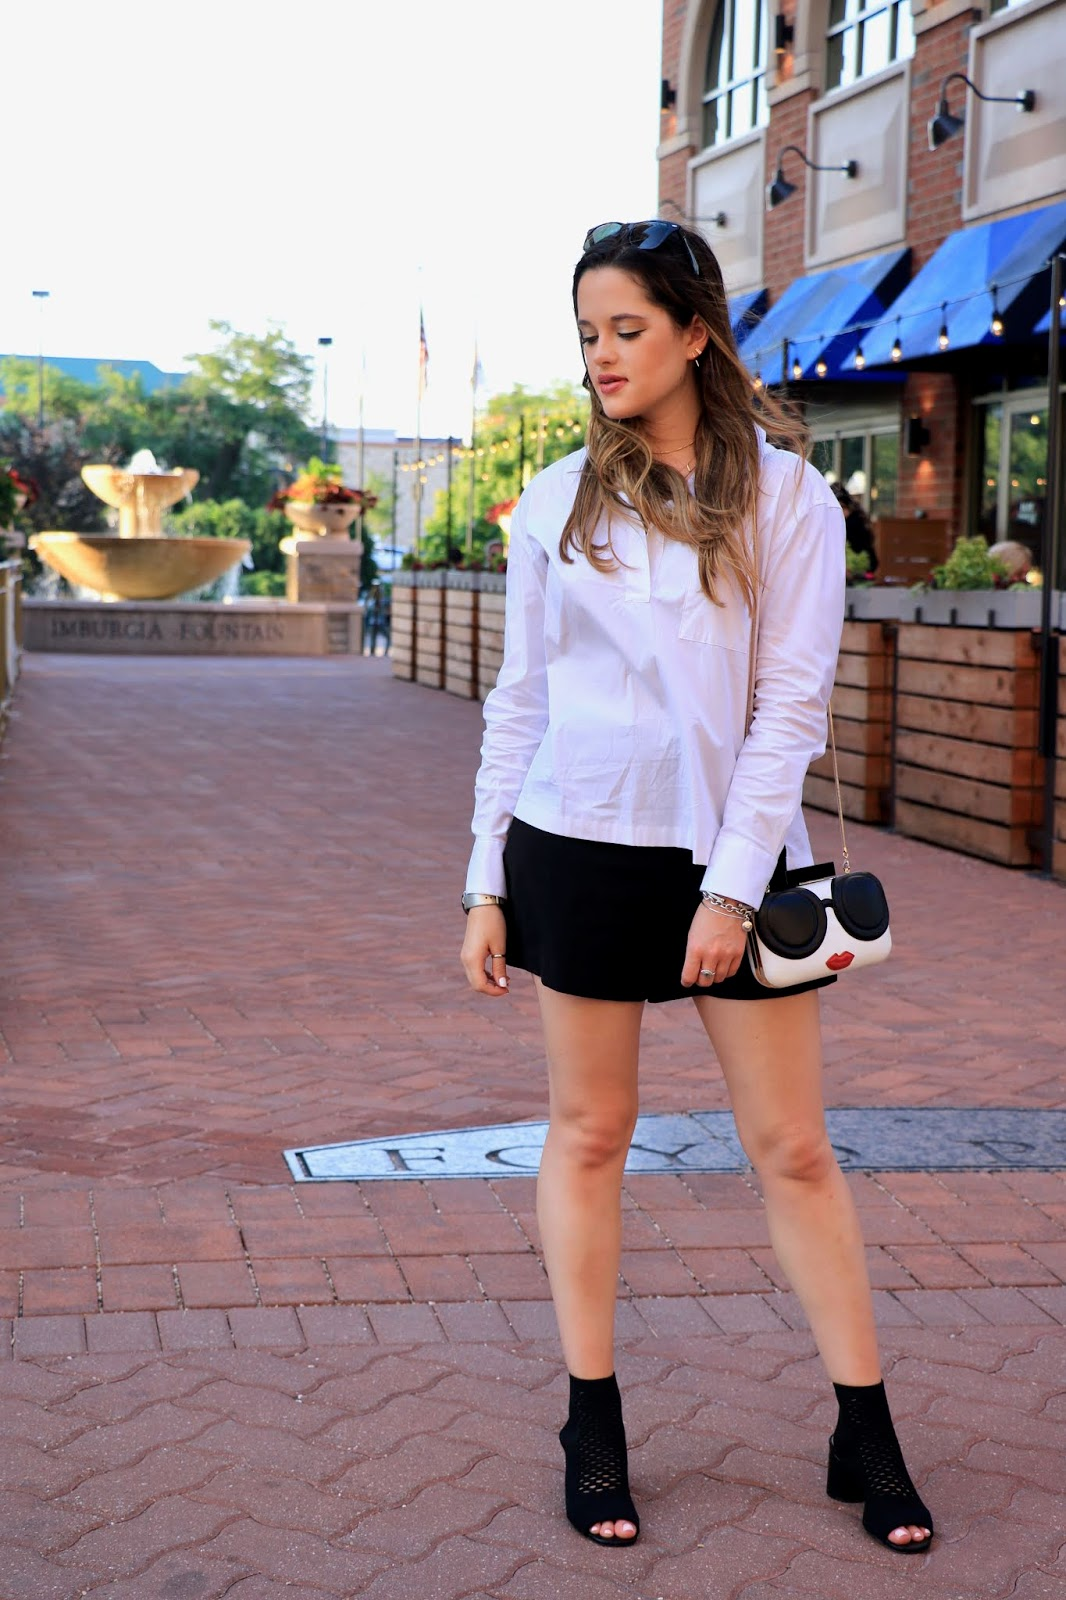 Nyc fashion blogger Kathleen Harper showing how to wear shorts to work